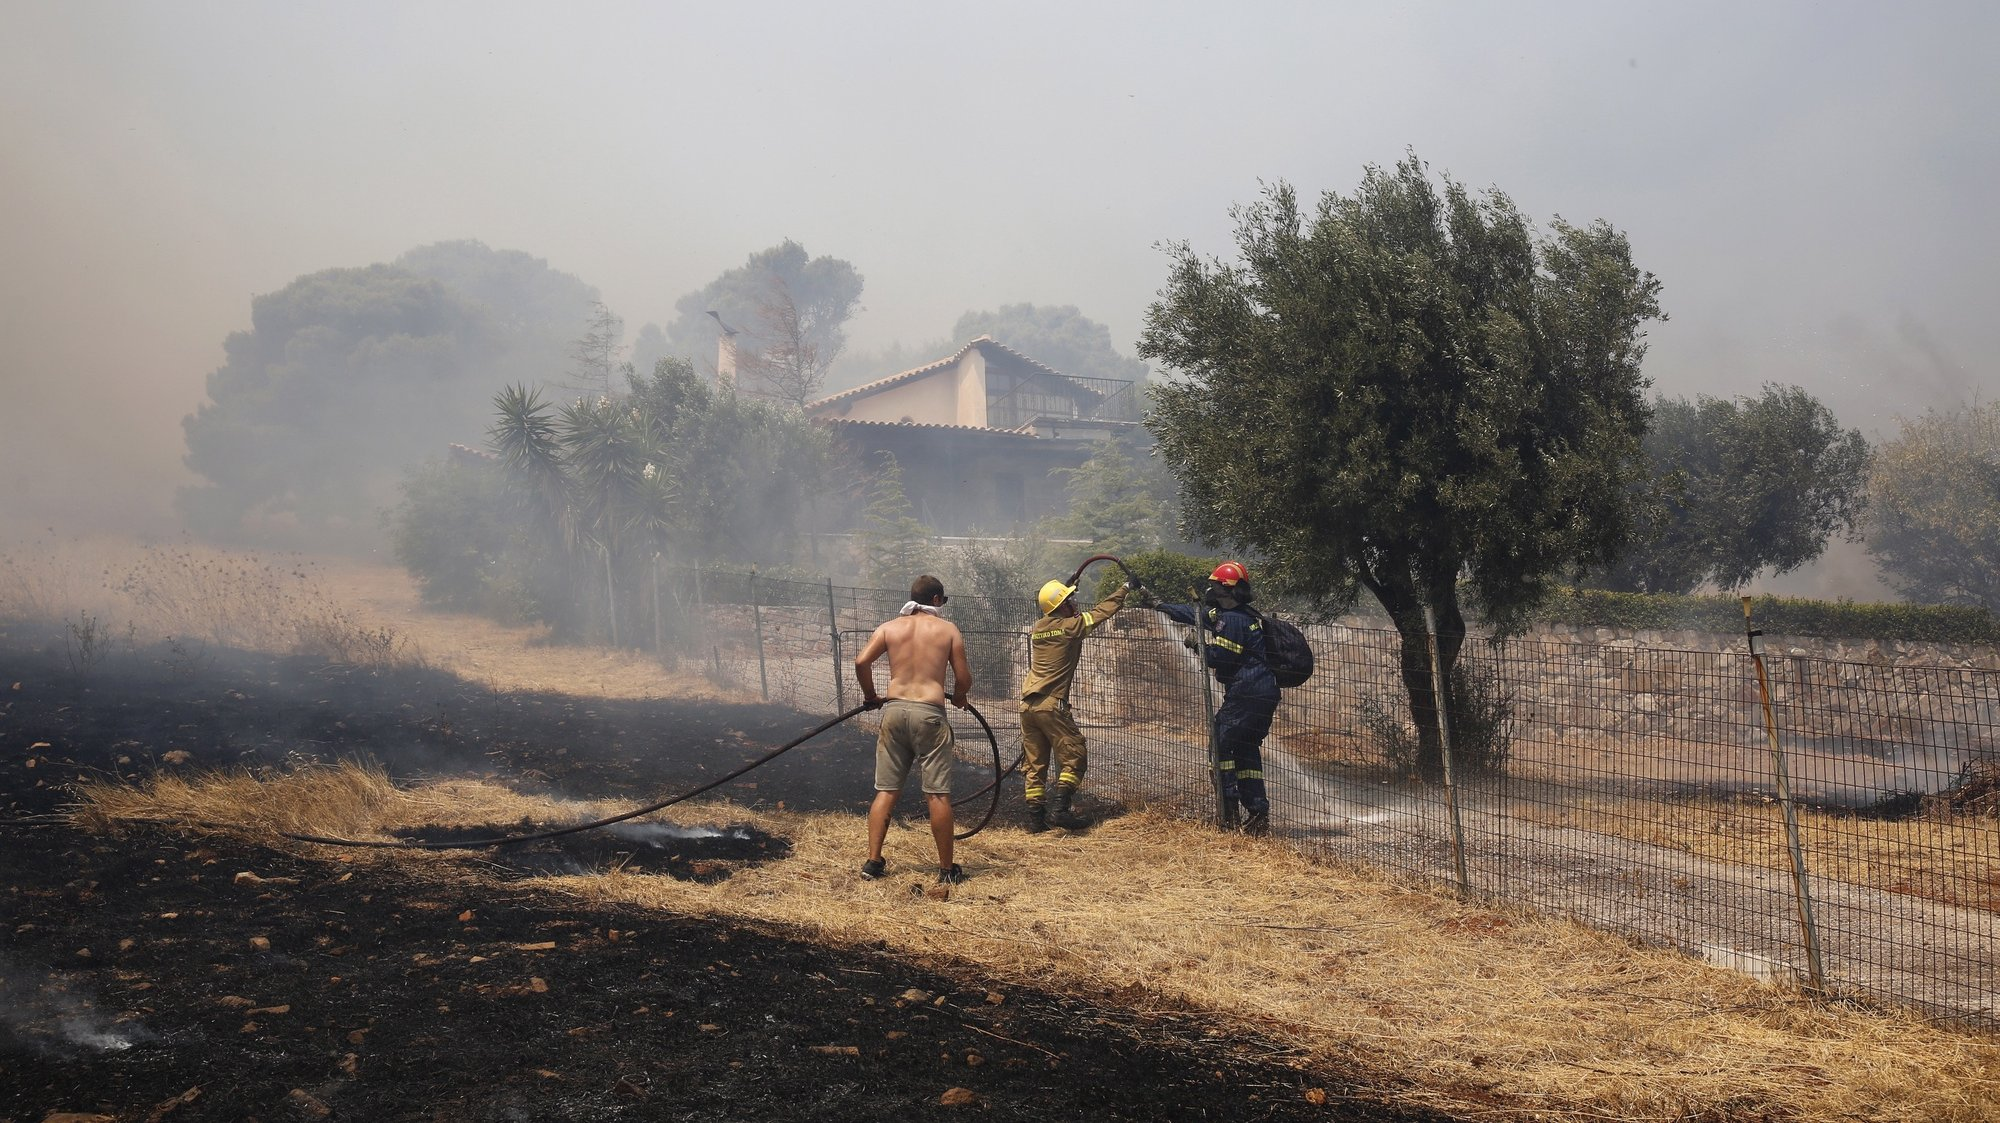 epa09416330 Firefghters and volunteers battle blazes raging near a house during a wildfire that broke out in the area of Keratea, some 40 km away from Athens city, Greece, 16 August 2021. Three settlements in the area of Keratea have been evacuated and the traffic in the area has been interrupted. Meanwhile, another wildfire broke out at a forest area in Villia, Attica region.  EPA/ALEXANDROS VLACHOS